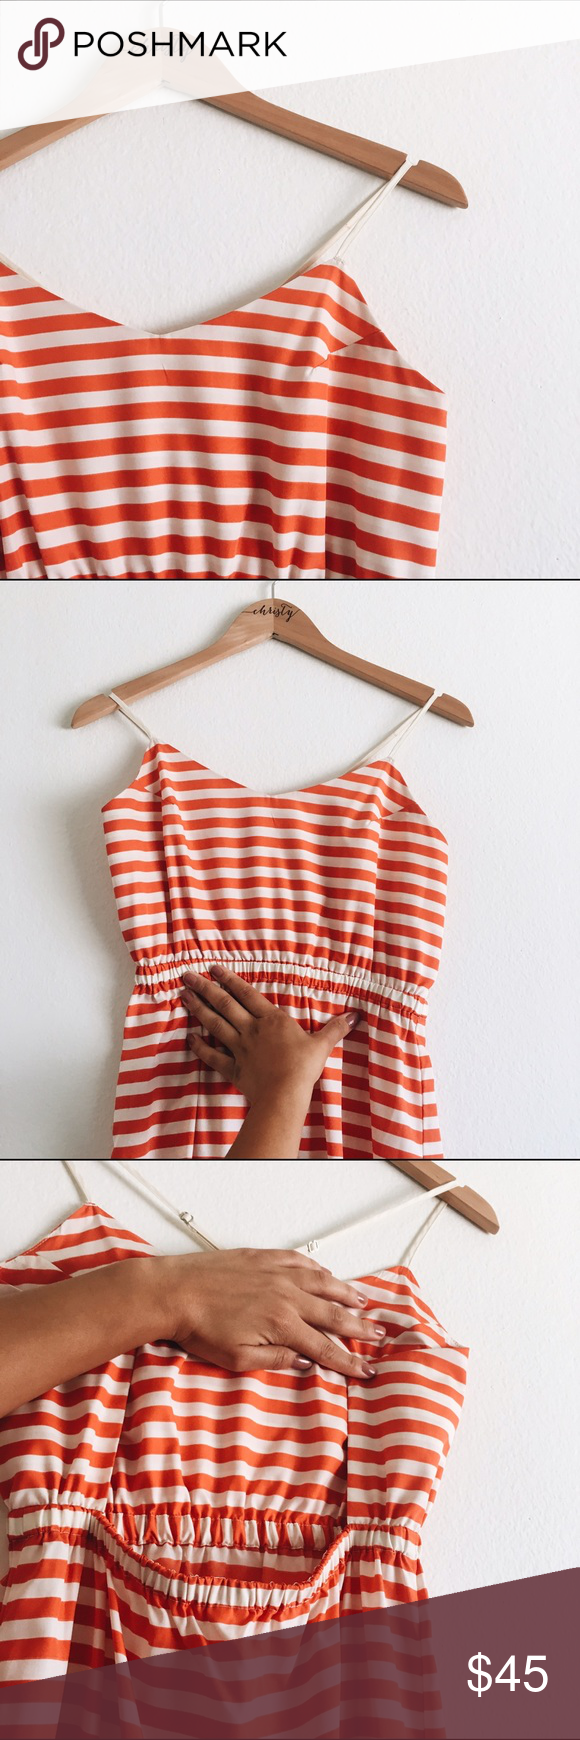 Urban Outfitters striped dress! Perfect for summer events! This orange/cream striped maxi has adjustable straps and an open back with an elastic feature on the back as well. Doesn't stretch much as it's 100% polyester. Urban Outfitters Dresses Maxi